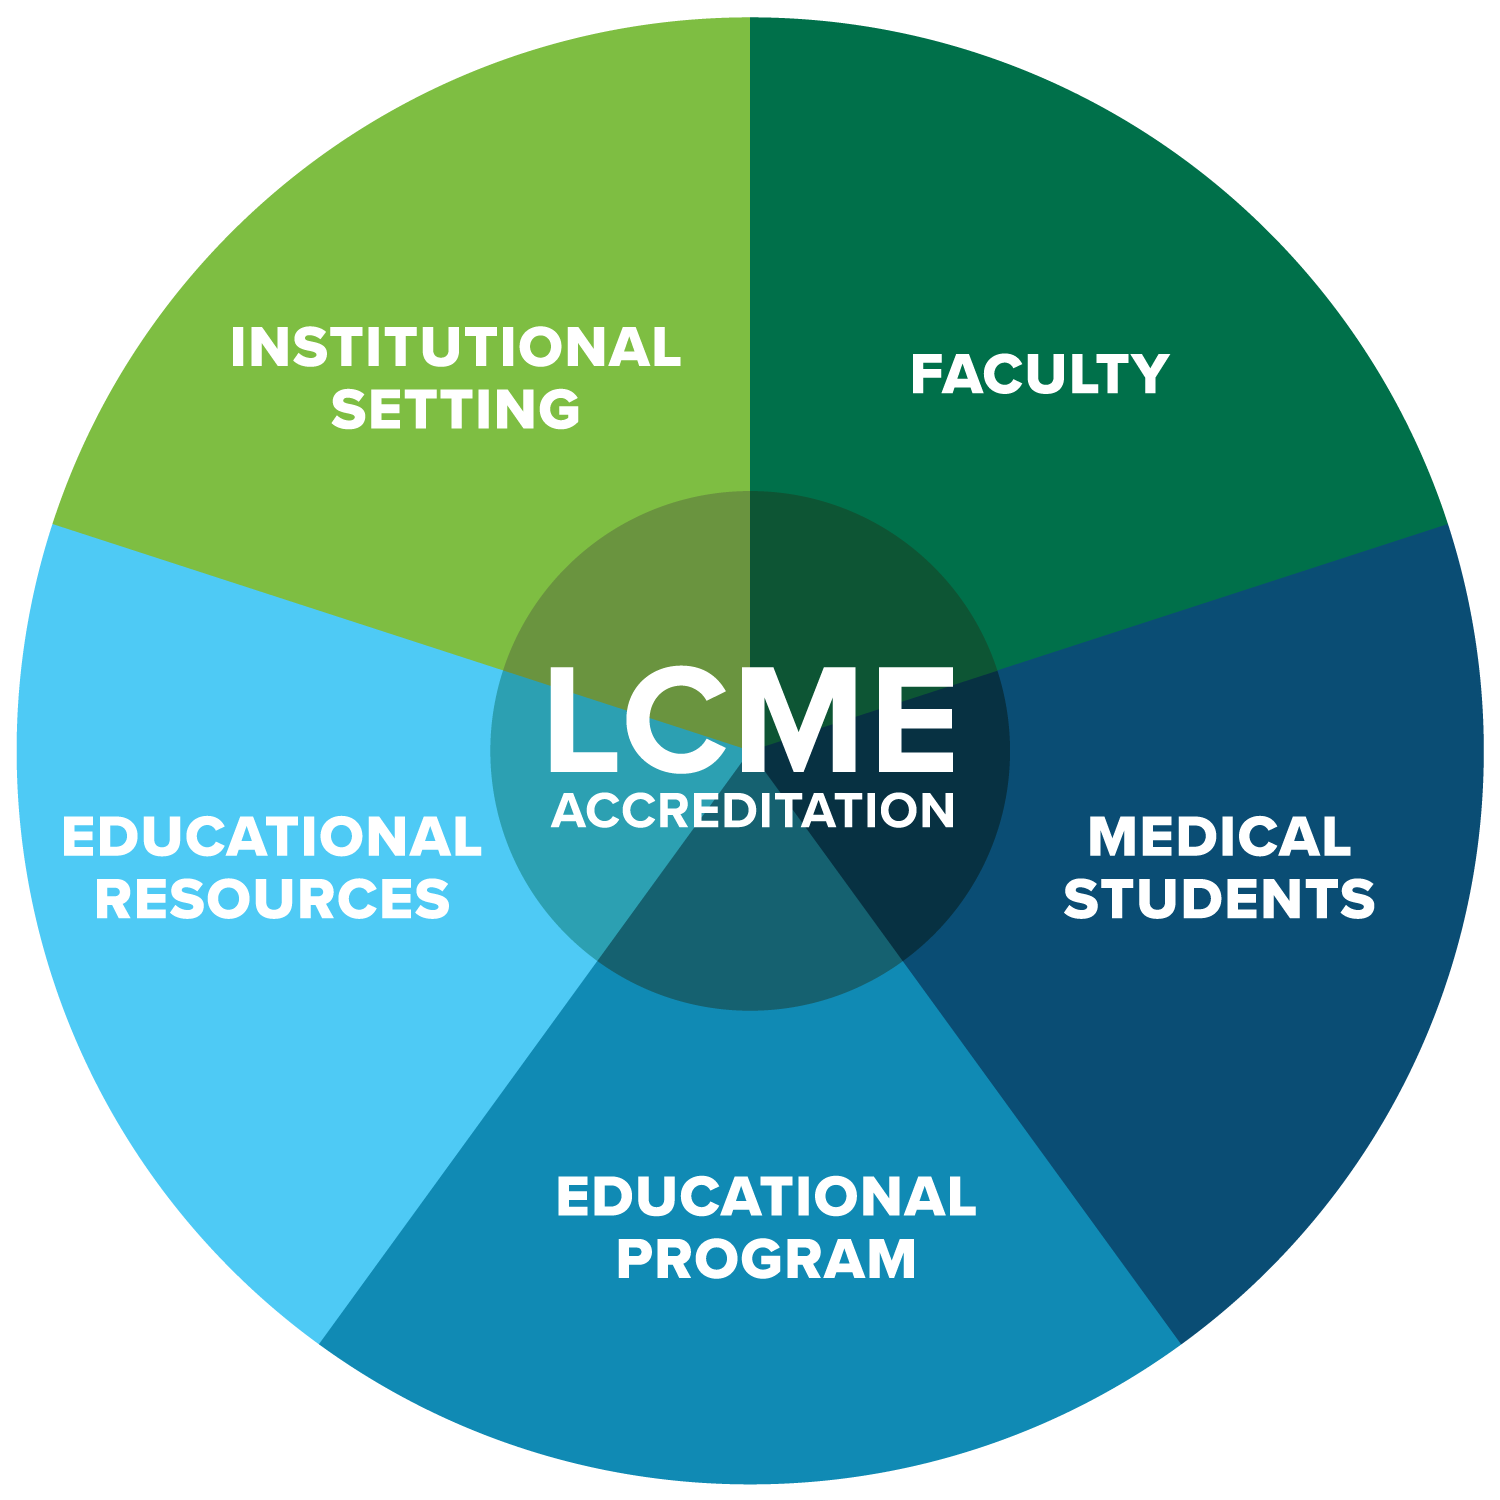 lcme process